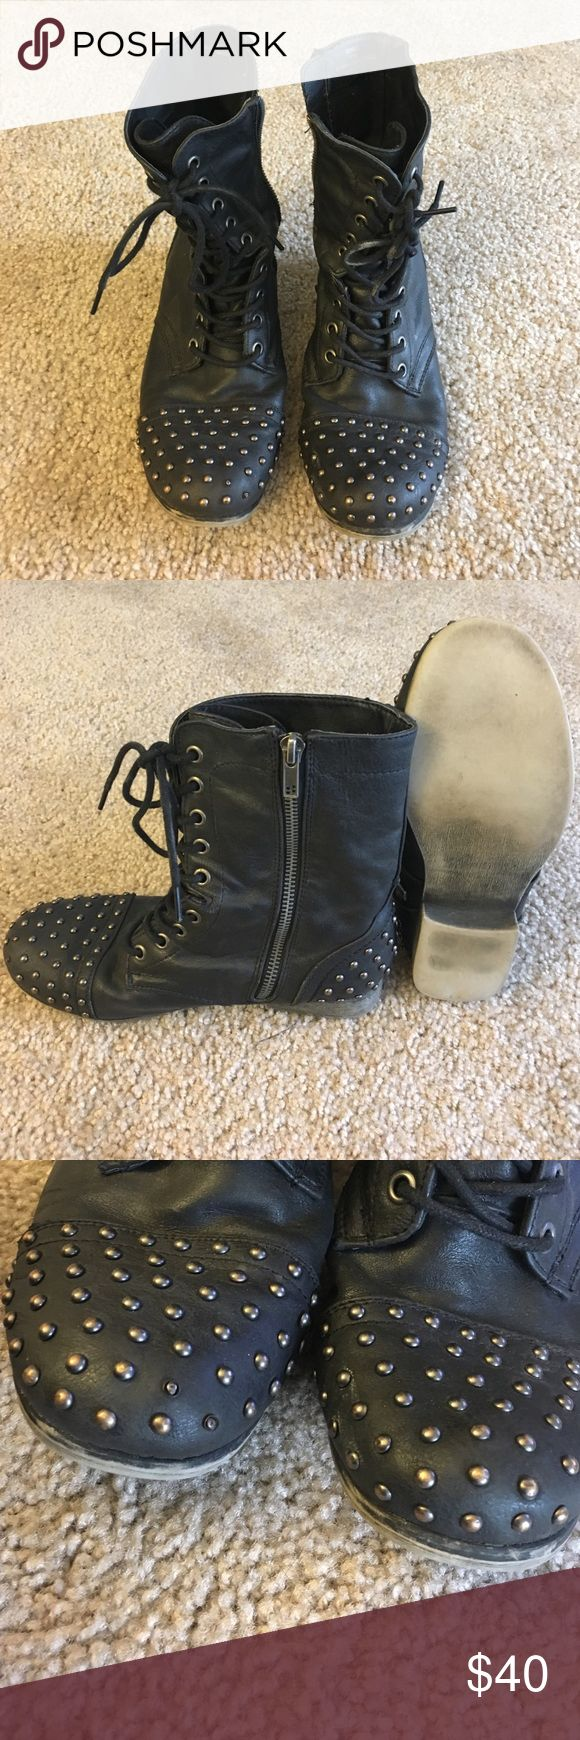 Madden Girl studded lace up combat boots Black lace up, studded, combat boots Madden Girl Shoes Combat & Moto Boots